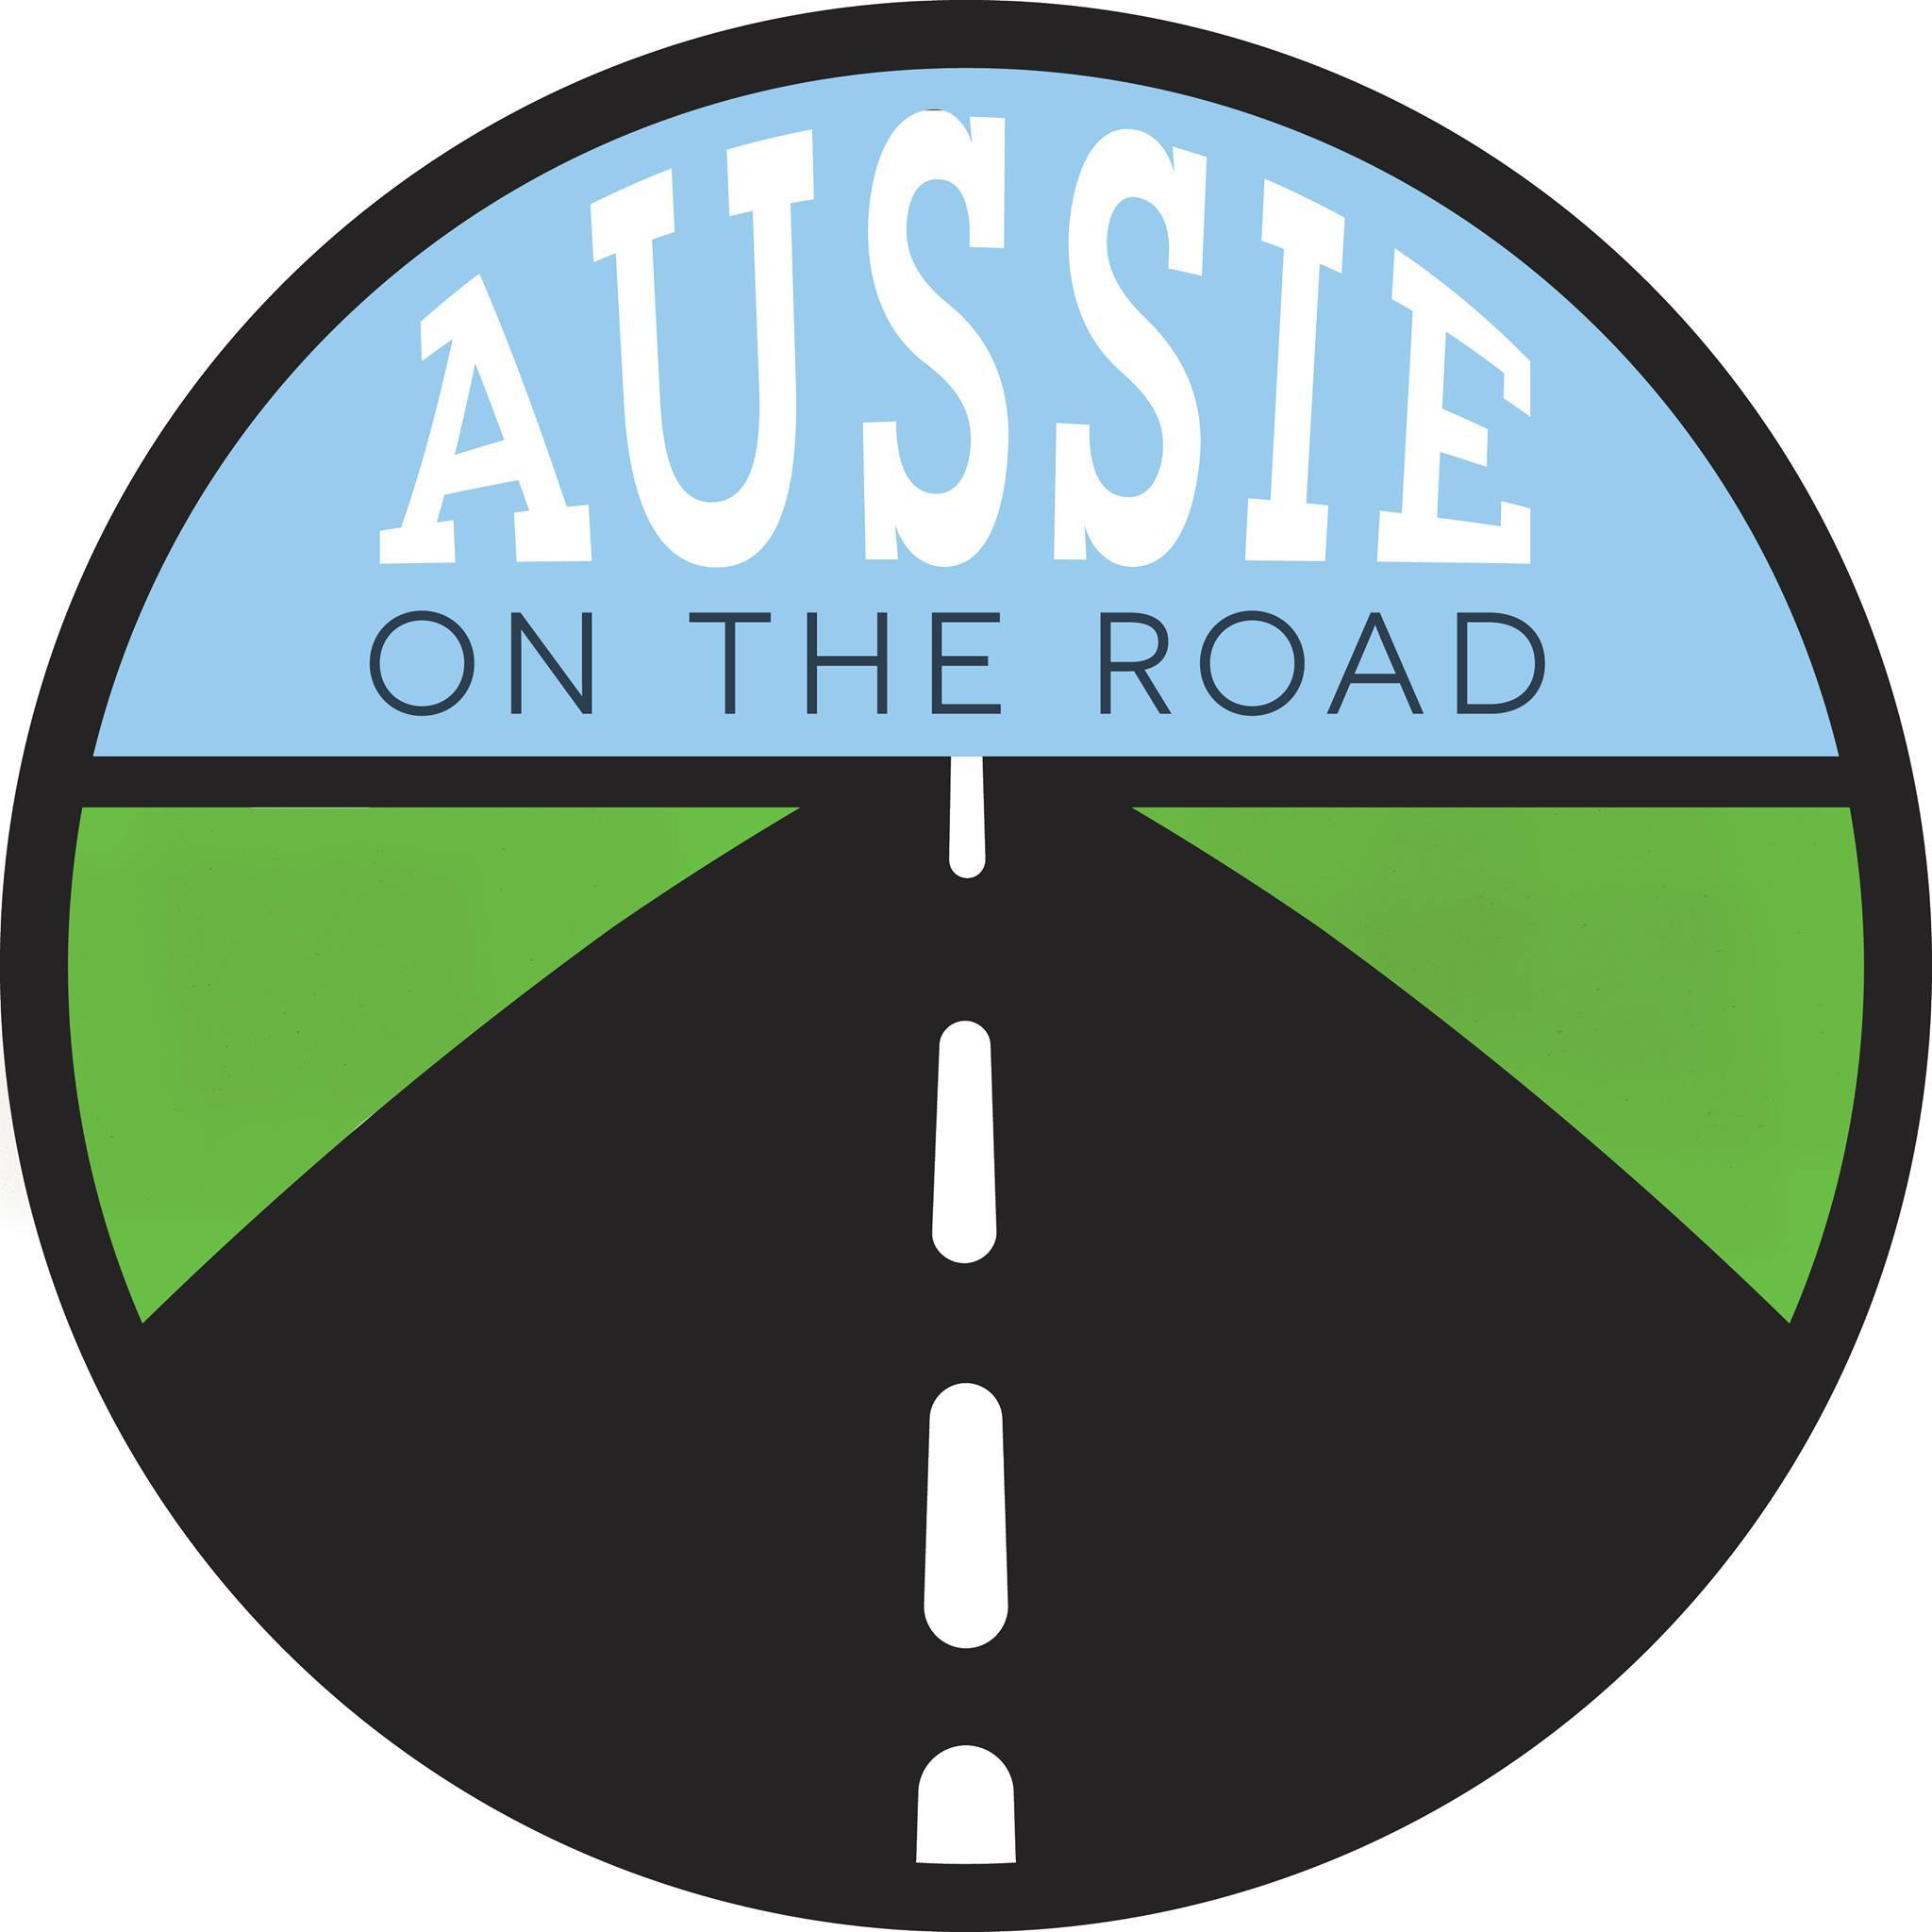 Aussie on the Road